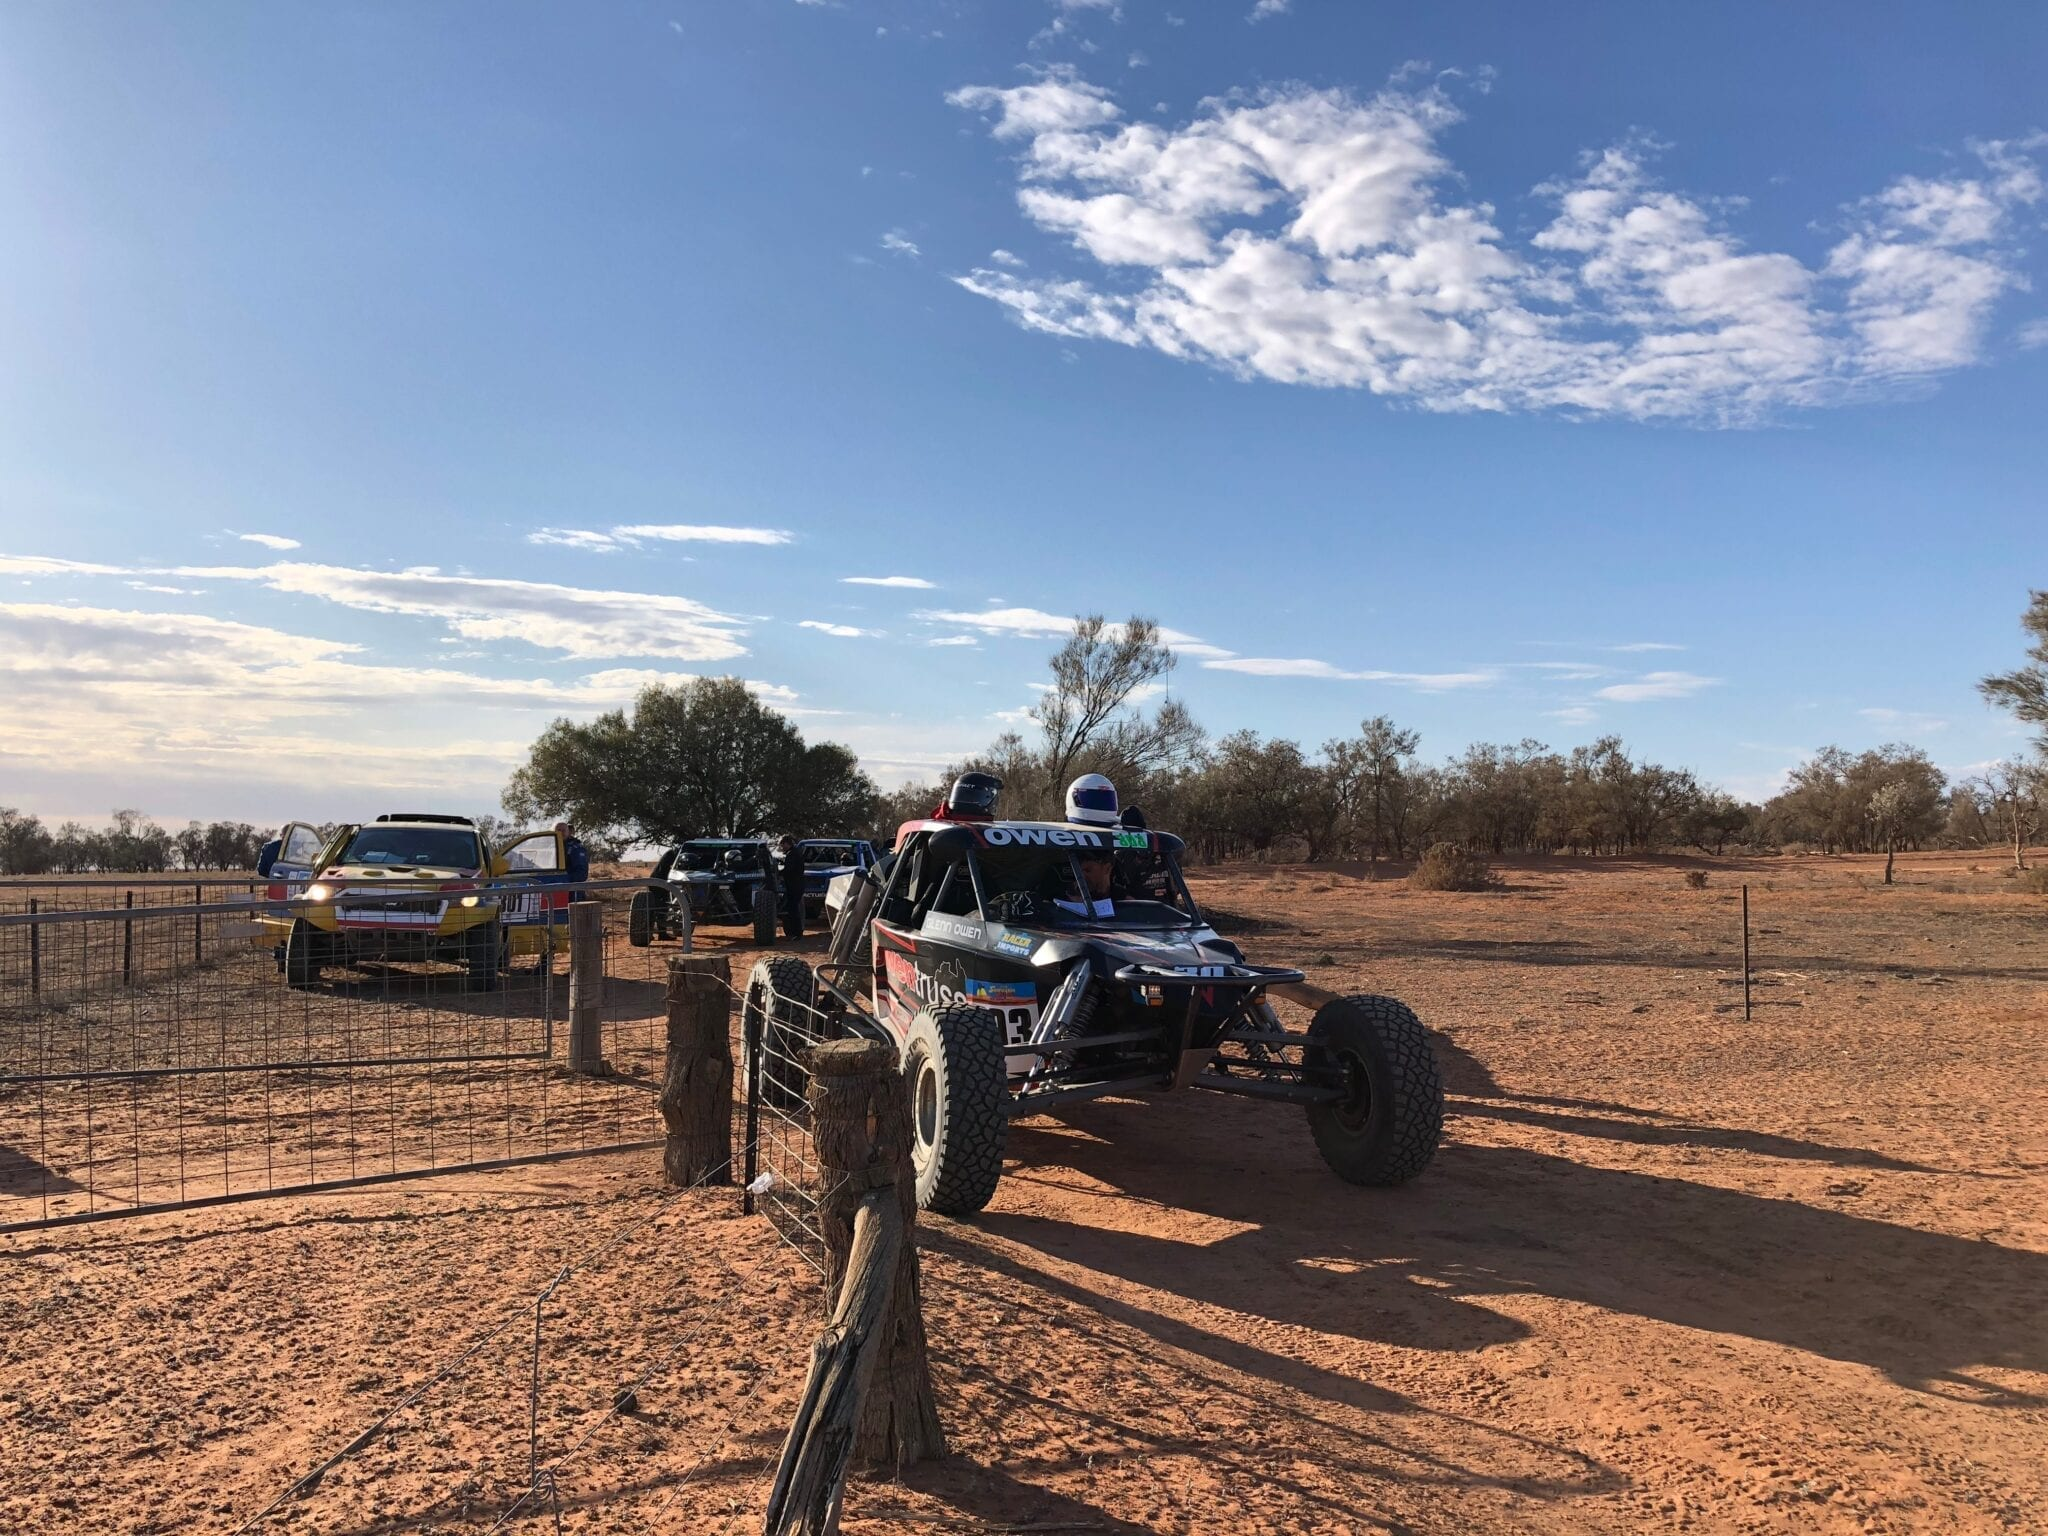 Volunteering At The Sunraysia Safari | Off Road Racing In Australia